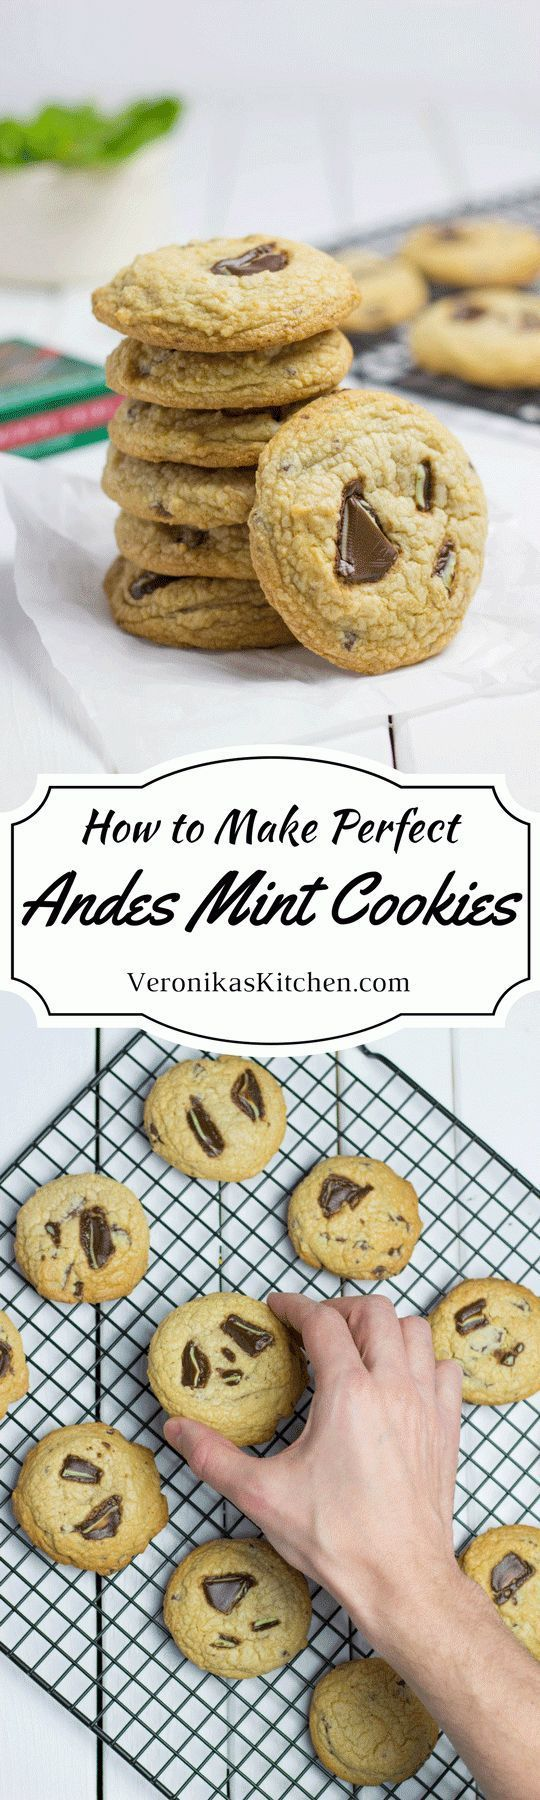 These Andes Mint Cookies are soft inside, crispy outside, and have a perfect balance between mint, chocolate and vanilla flavors. It is the perfect dessert idea to celebrate St. Patrick's Day!